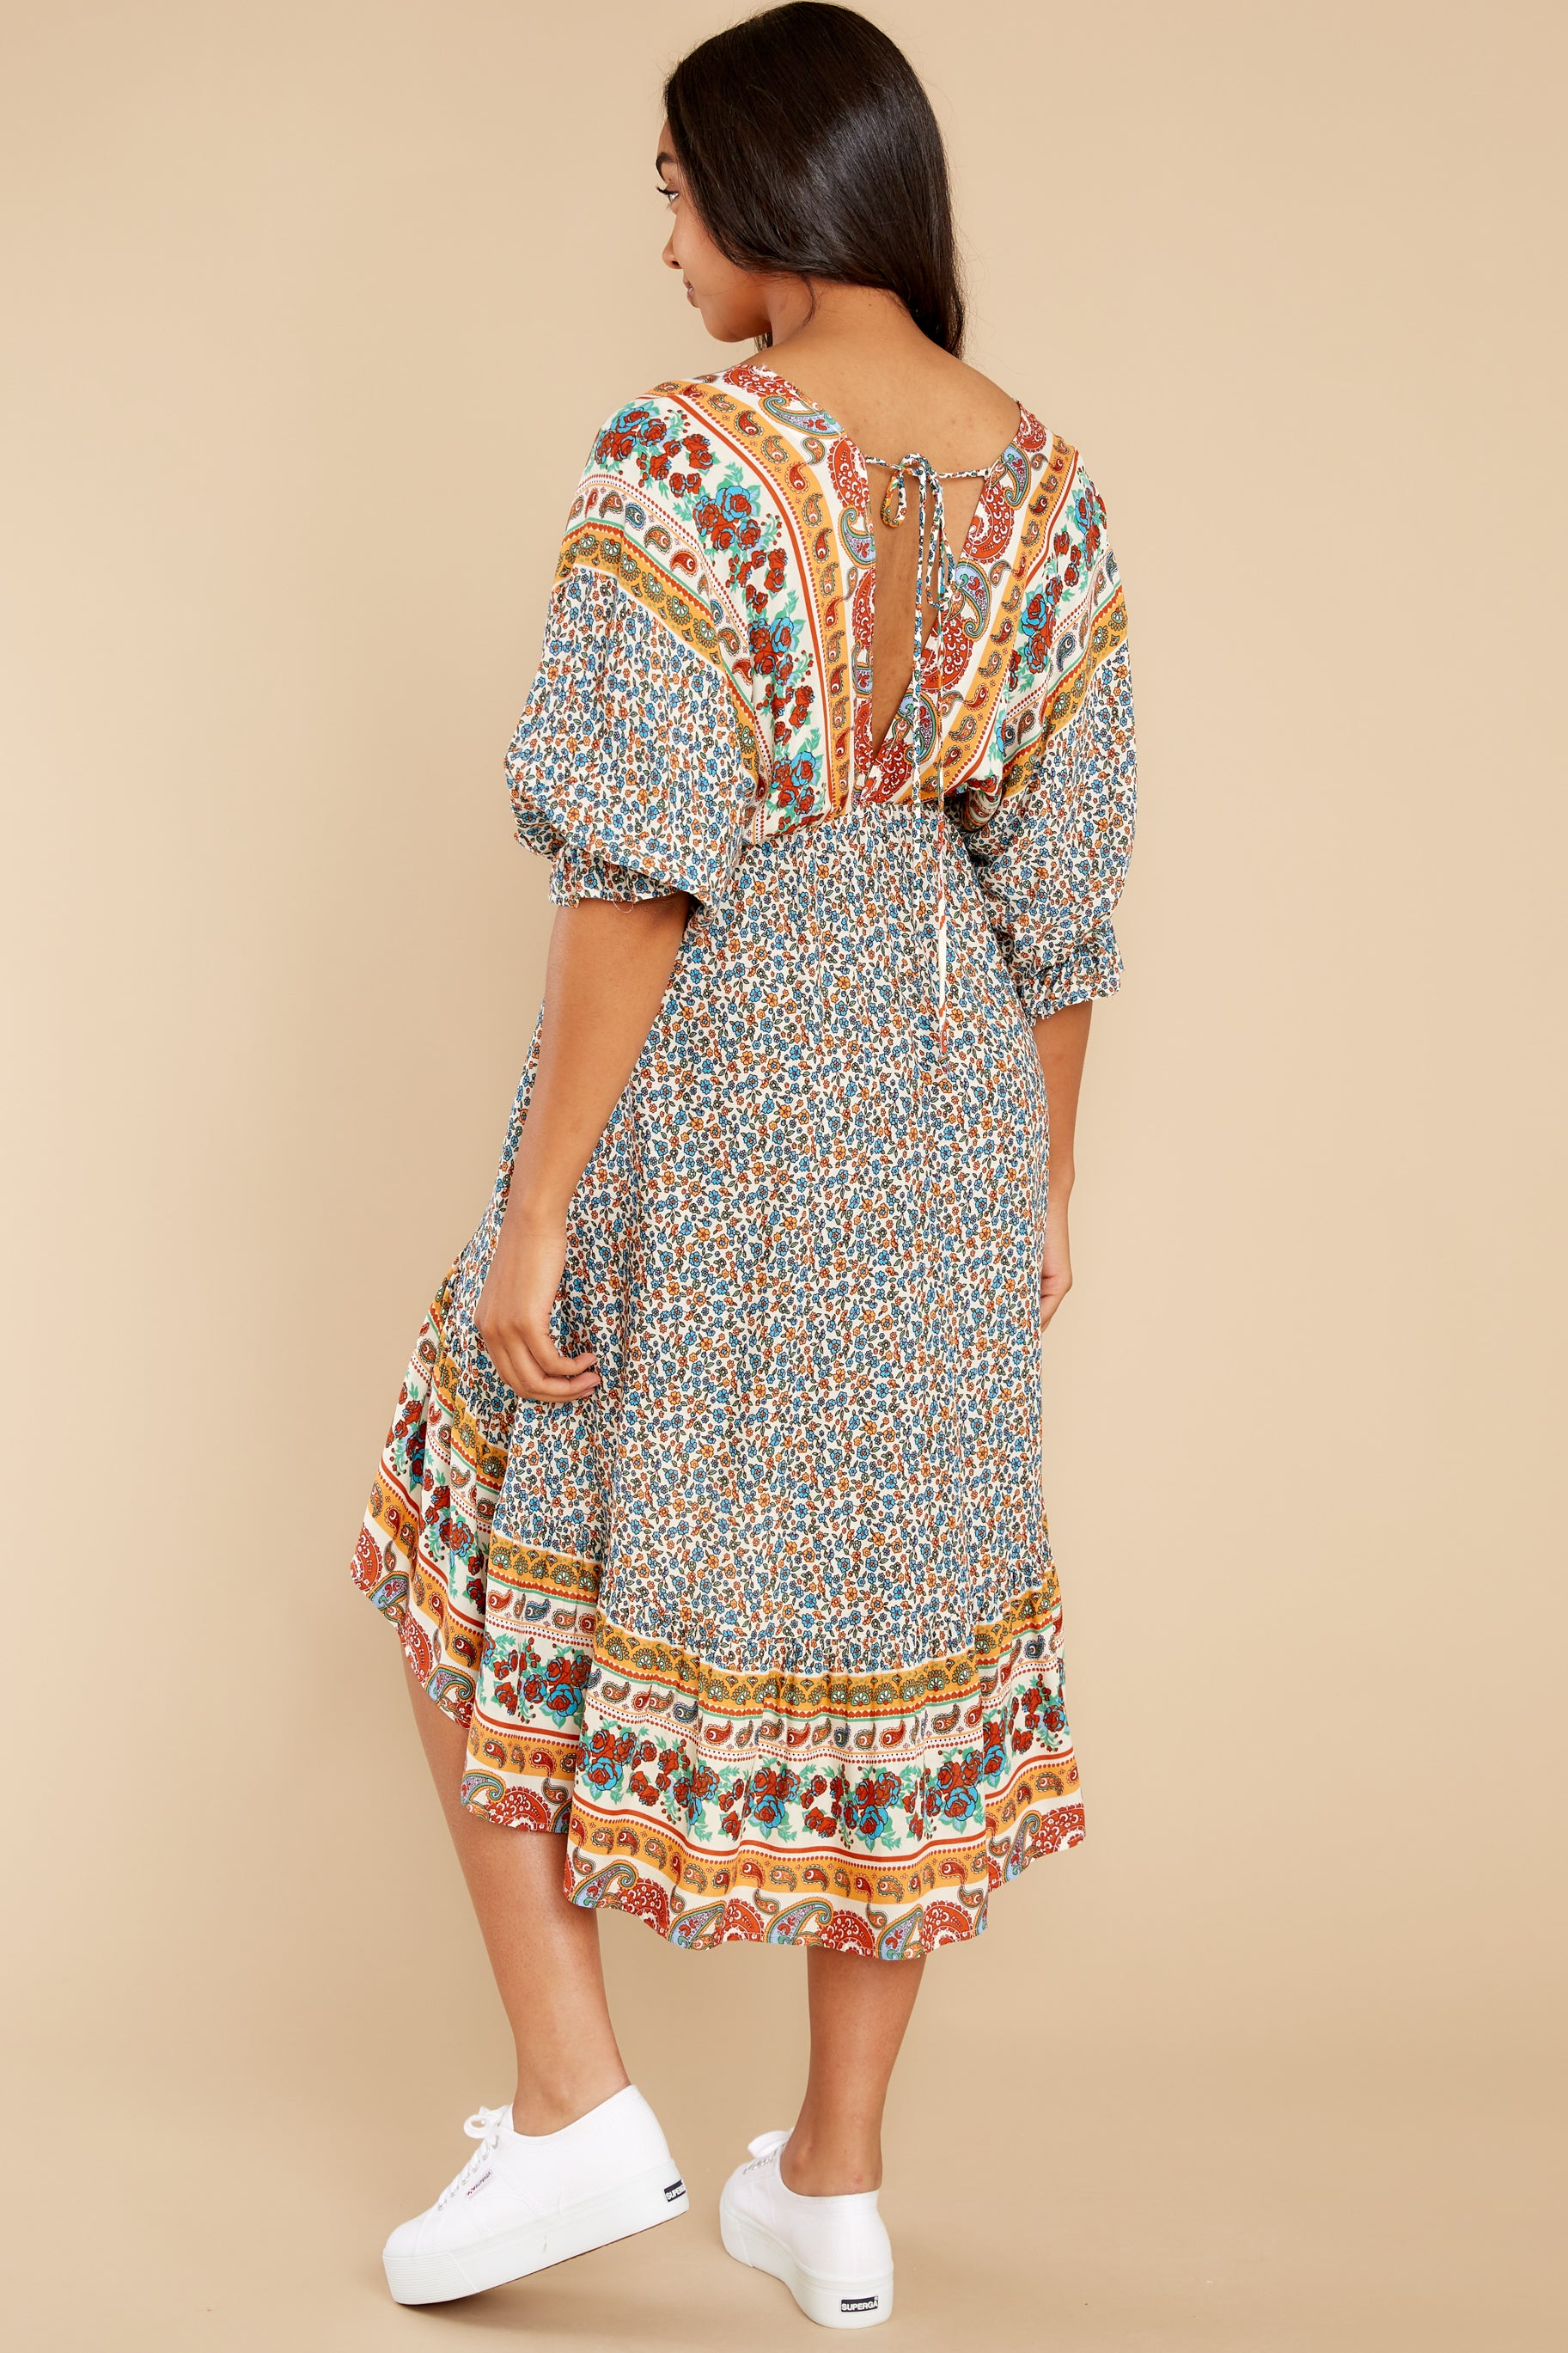 7 Out Of Envy  Multi Print Midi Dress at reddress.com